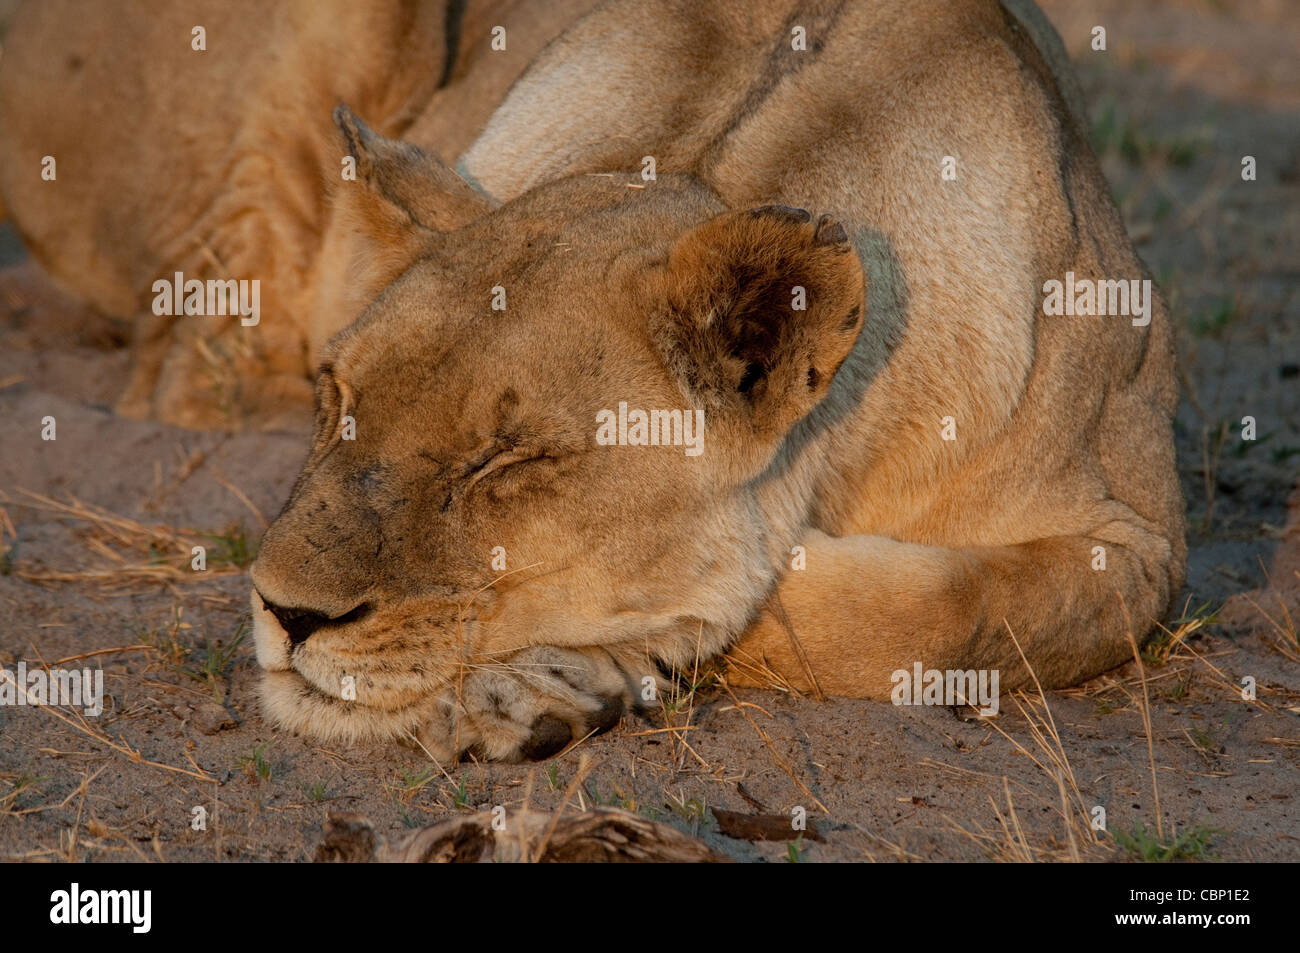 Africa Botswana Linyanti-Head show of lion resting with eyes closed - Stock Image